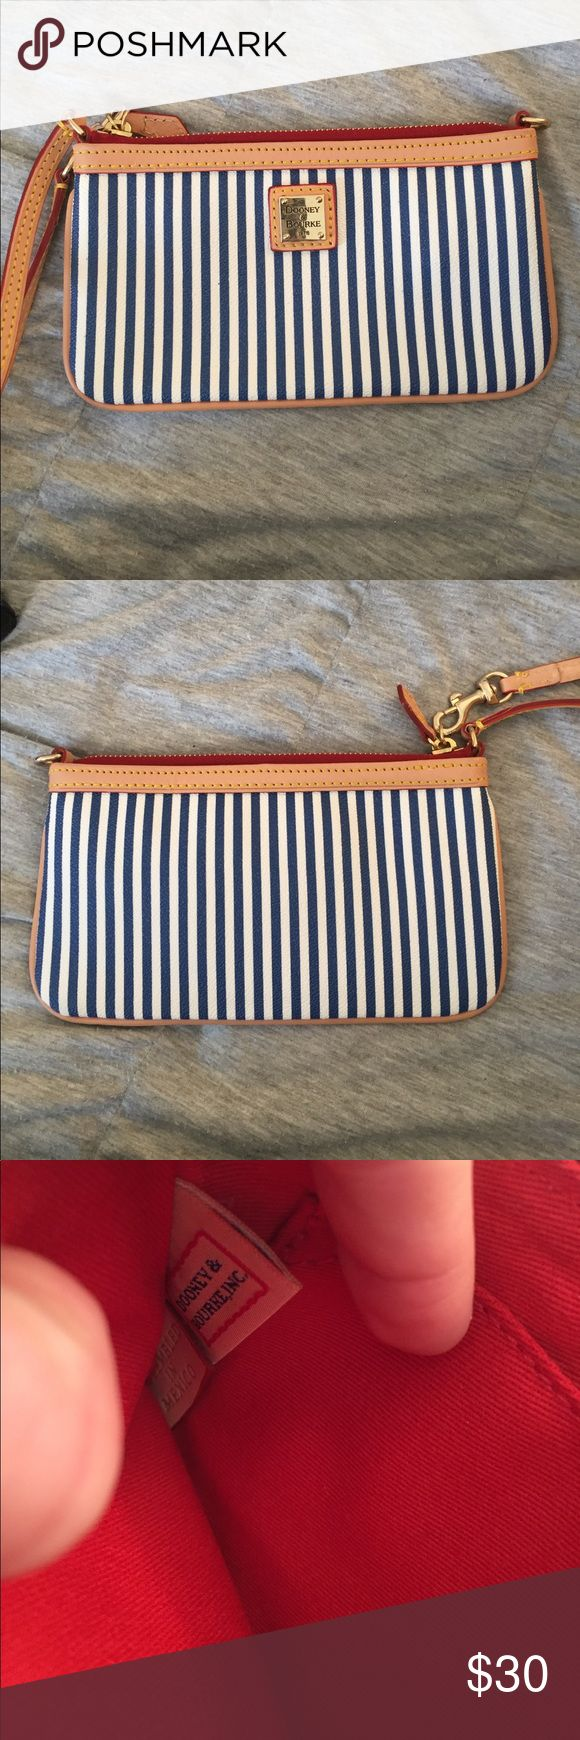 Rooney & Bourke wristlet Blue and white striped. In perfect condition & has never been used Dooney & Bourke Bags Clutches & Wristlets